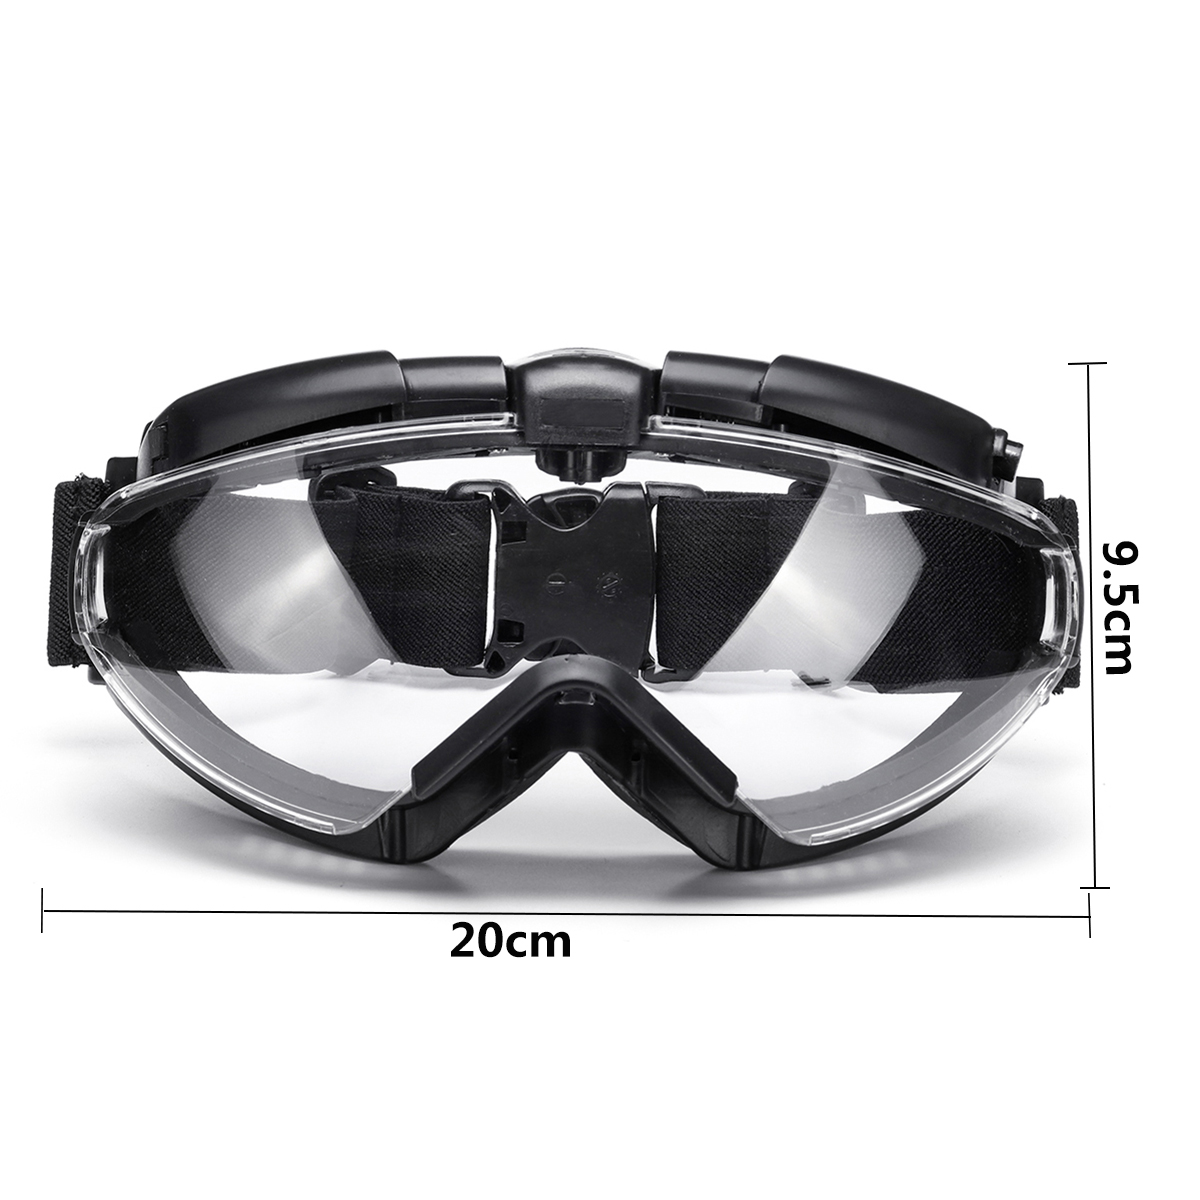 WosporT Goggles With Fan Anti-fog Dust Tactical Military Airsoft Regulator Safety Glasses